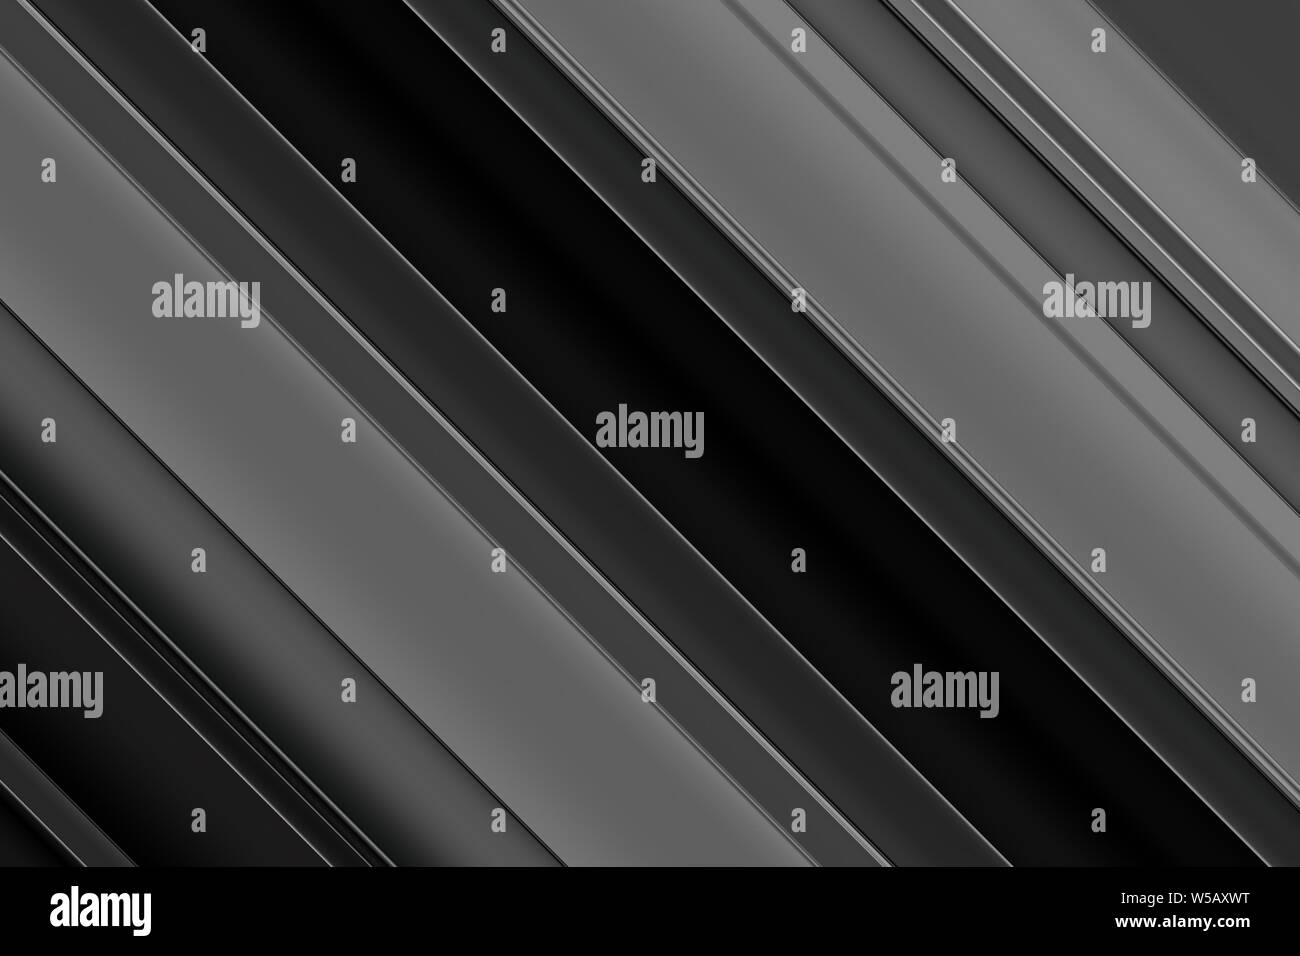 Abstract Background Gradient Wallpaper Stock Photo